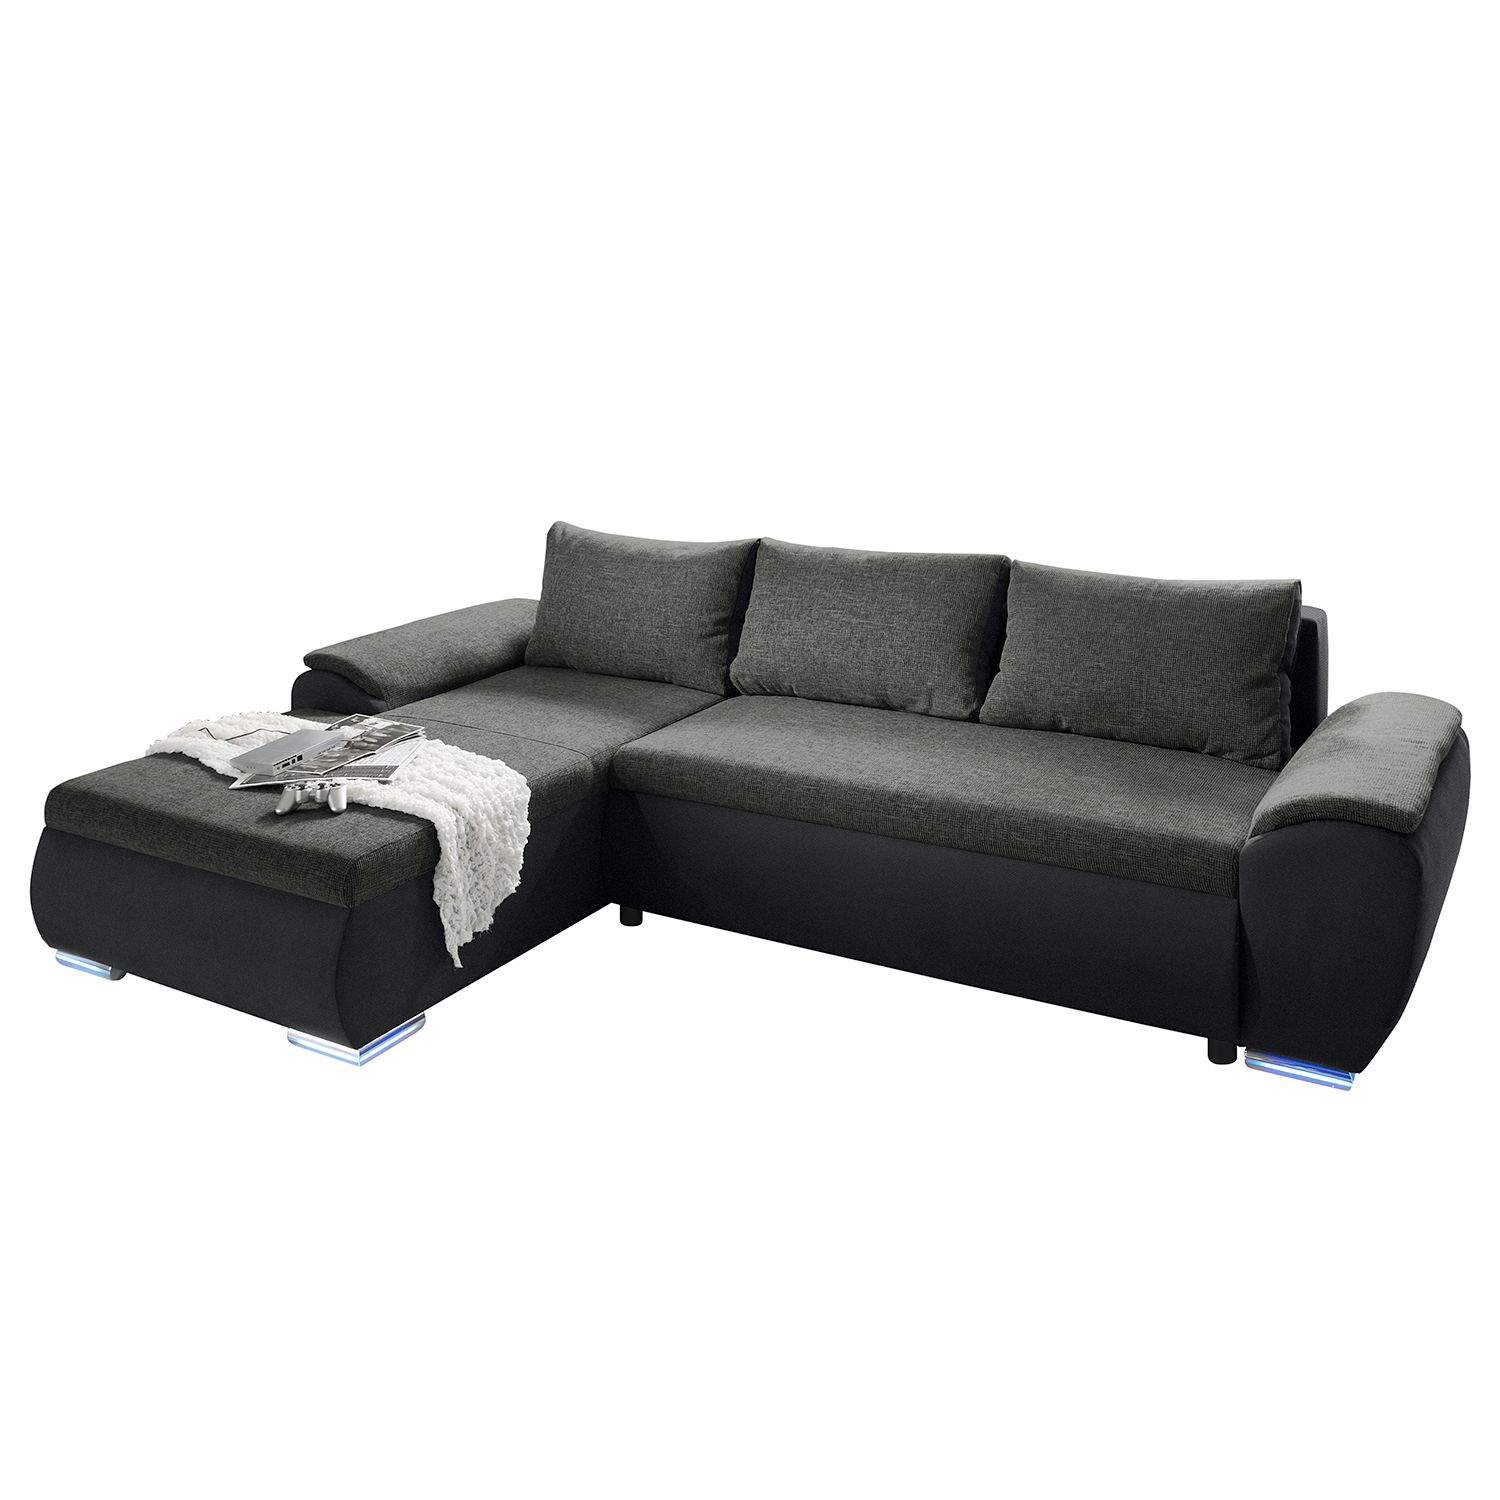 couches online g nstig kaufen ber shop24. Black Bedroom Furniture Sets. Home Design Ideas